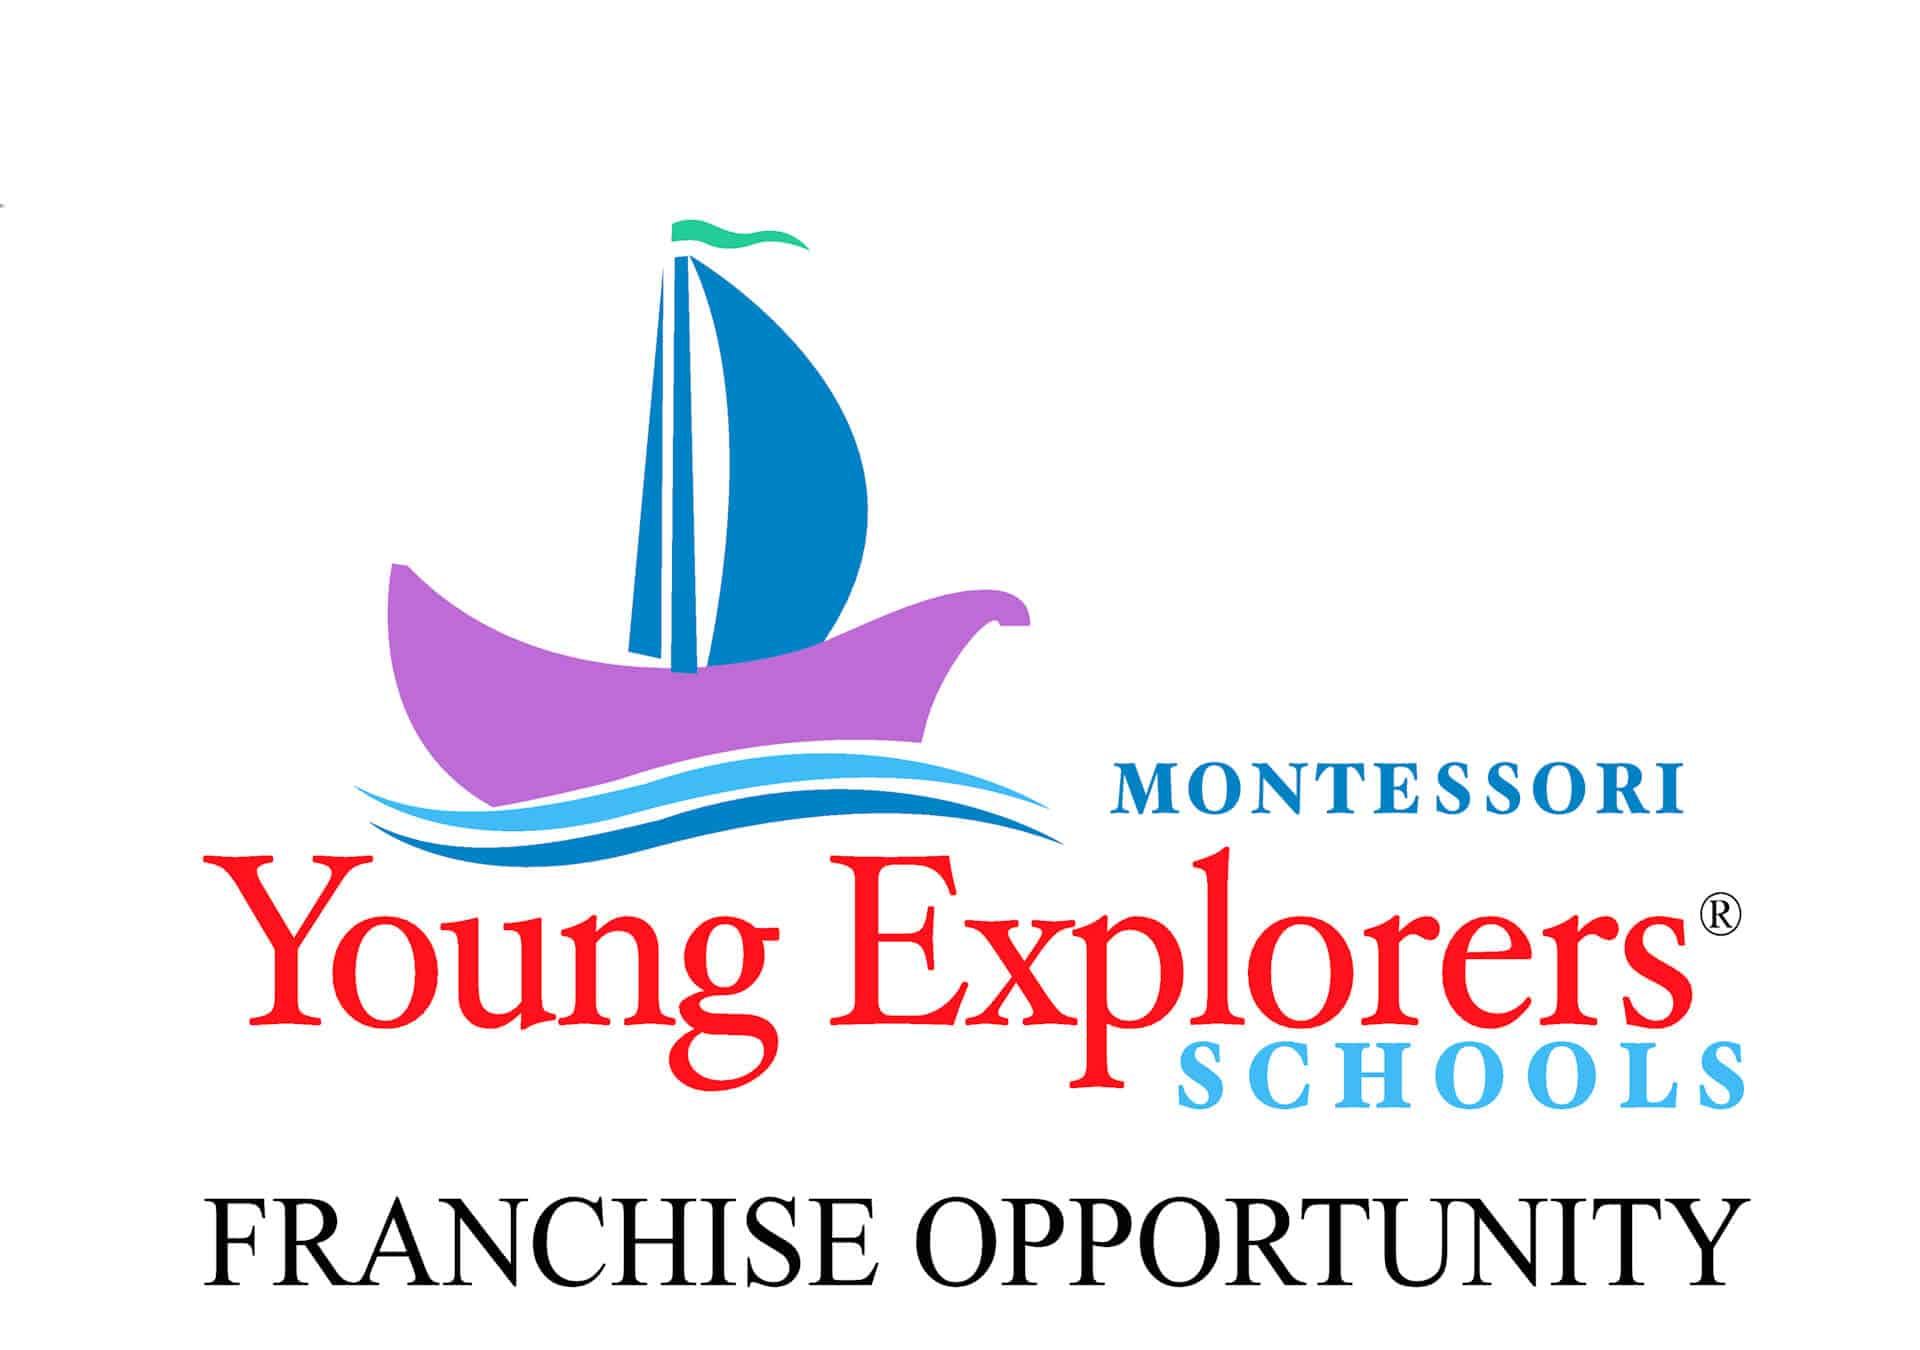 Shared Young Explorers with the world, allowing all children to benefit from the Young Explorers mission of inspiring individuals and building communities.